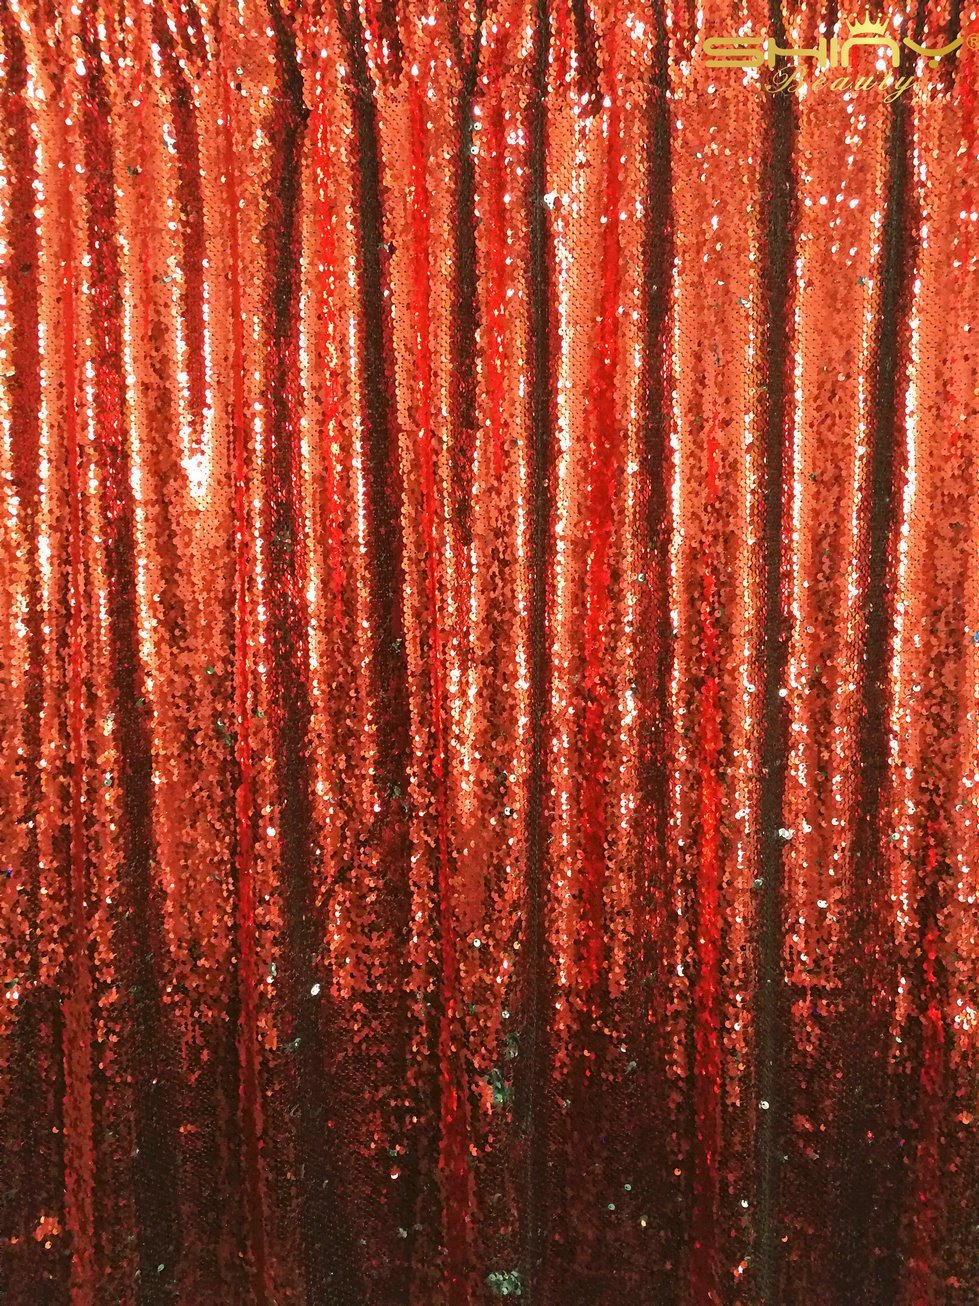 ShinyBeauty Red&Silver-Mermaid-Sequin Backdrop-2FTx8FT,Sparkyly Sequin Fabric Curtain Backdrop,Perfect for Party/Wedding/Event/Prom/Birthday